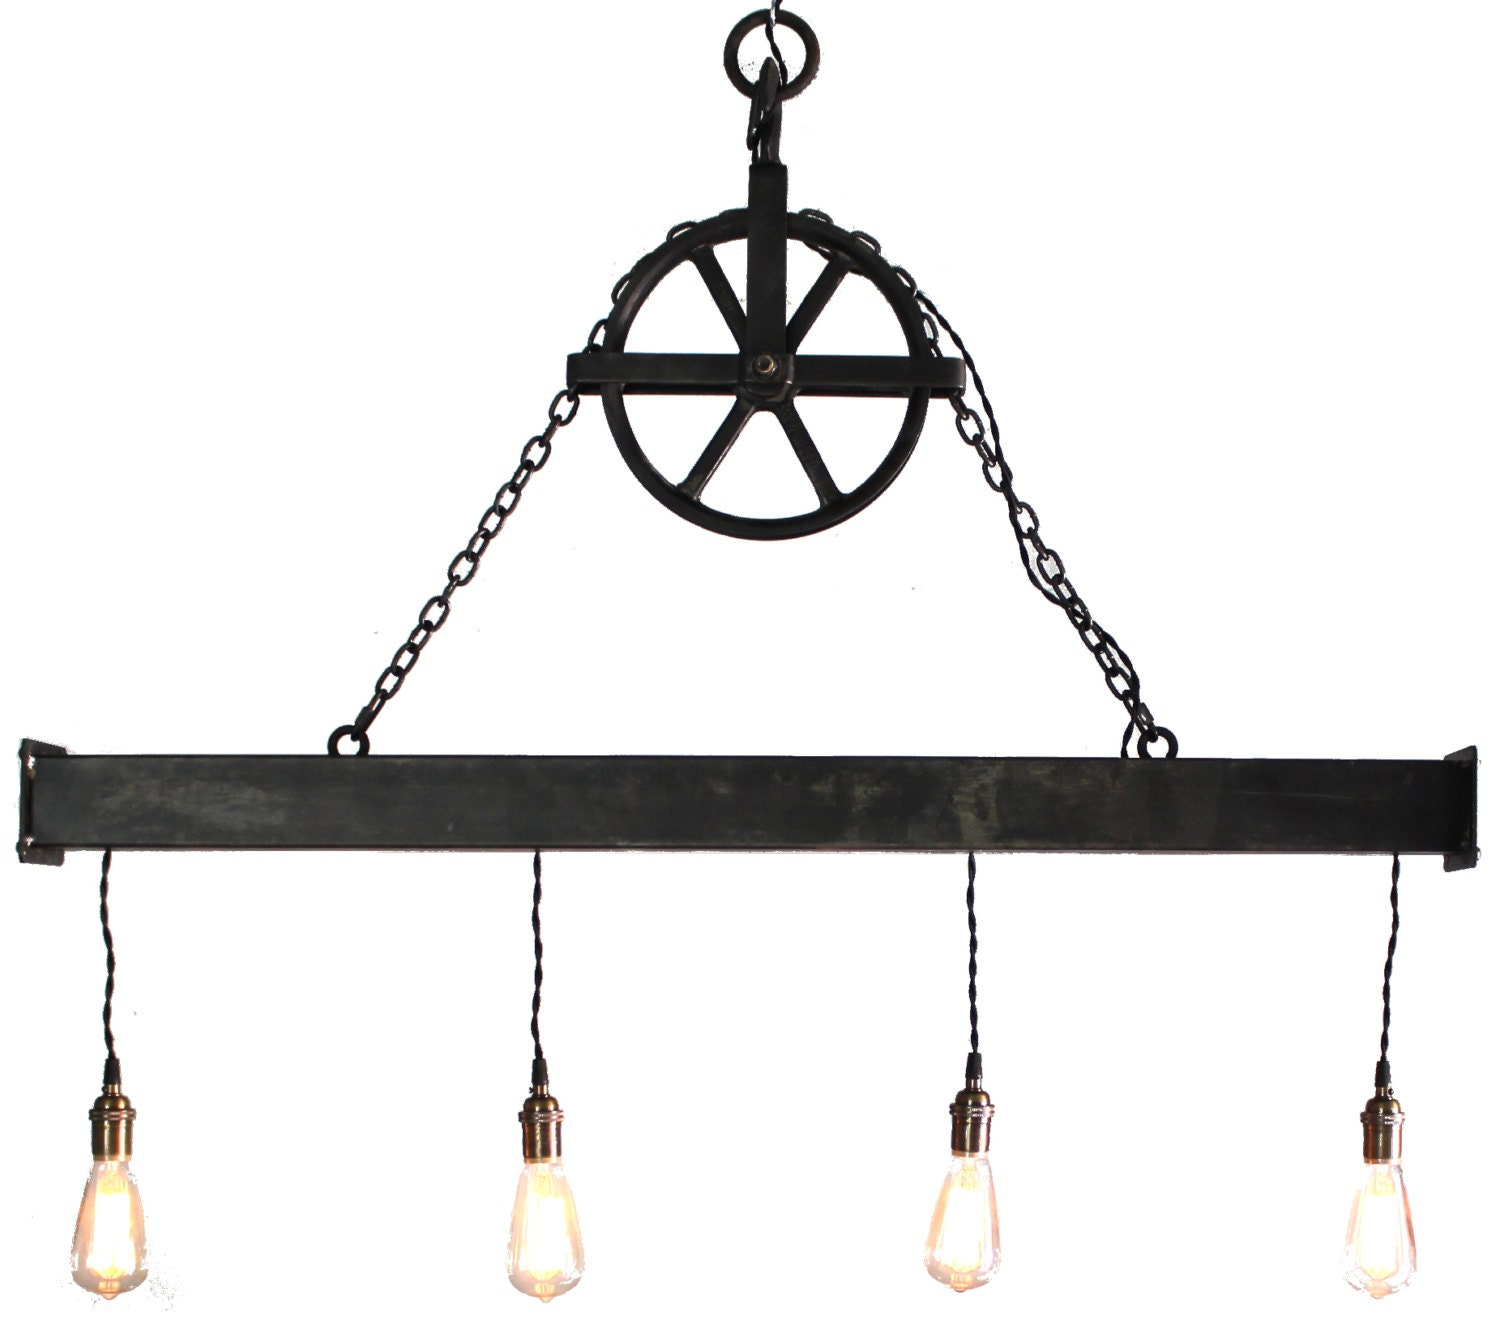 Items Similar To Rustic Light Pendant Lighting Pulley On Etsy: Handcrafted 4 Light Steel Beam Chandelier With Aged Pulley